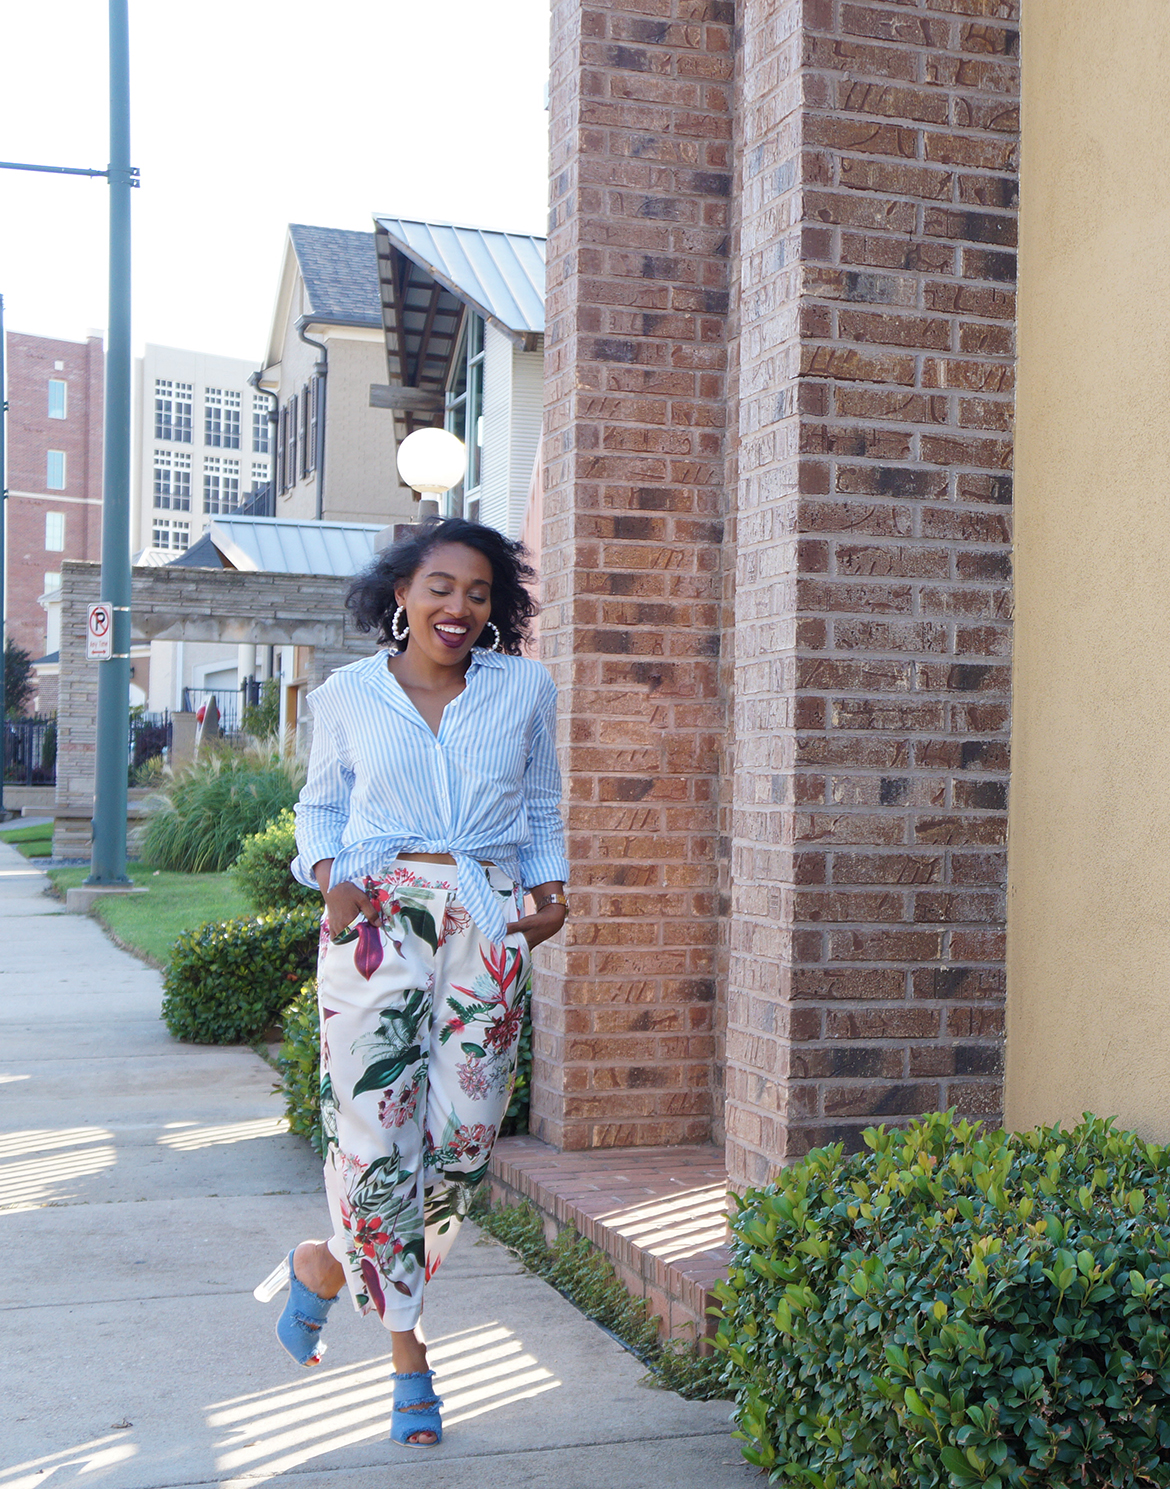 Andrea Fenise Memphis Fashion Blogger and Financial Blogger shares journey of conquering financial fears